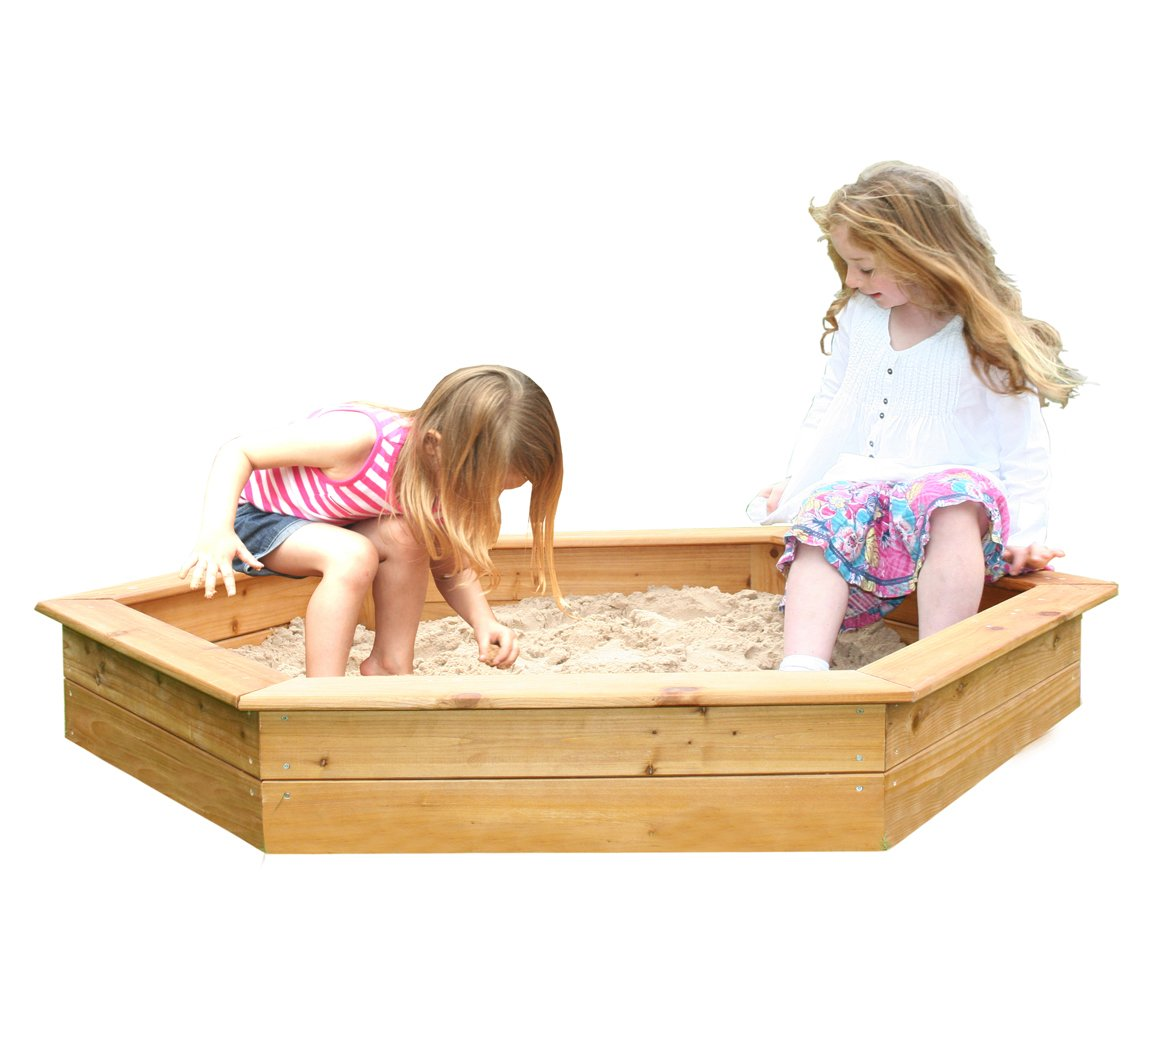 Garden Games 1.5m Hexagonal Wooden Sand Pit with Cover and Underlay BabyLand 6402